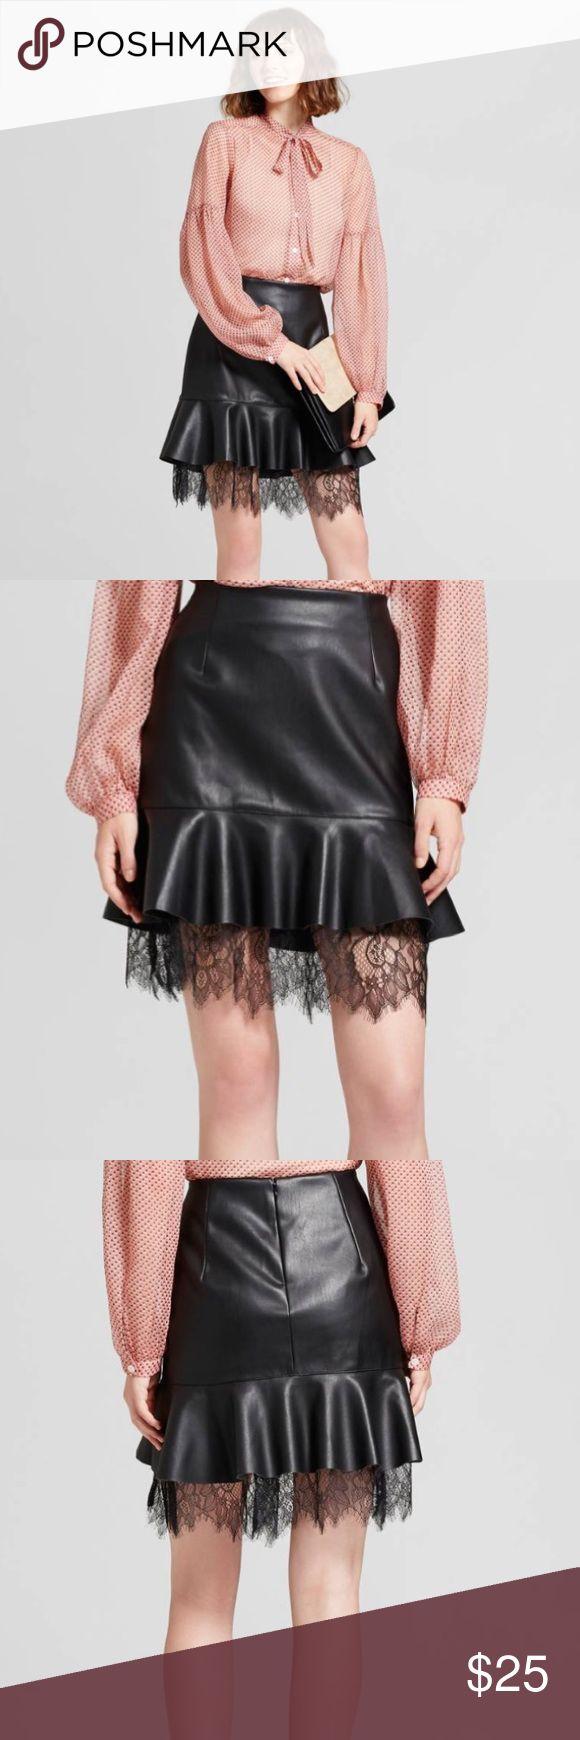 Vegan Leather + Lace Layered Skirt NWT - Lace Layered Mini Skirt is perfect for date night paired kicky ankle boots or strappy heels. Lace detailing adds a feminine touch to this sassy skirt.  Care and Cleaning: Machine wash & Tumble dry who what wear Skirts Mini